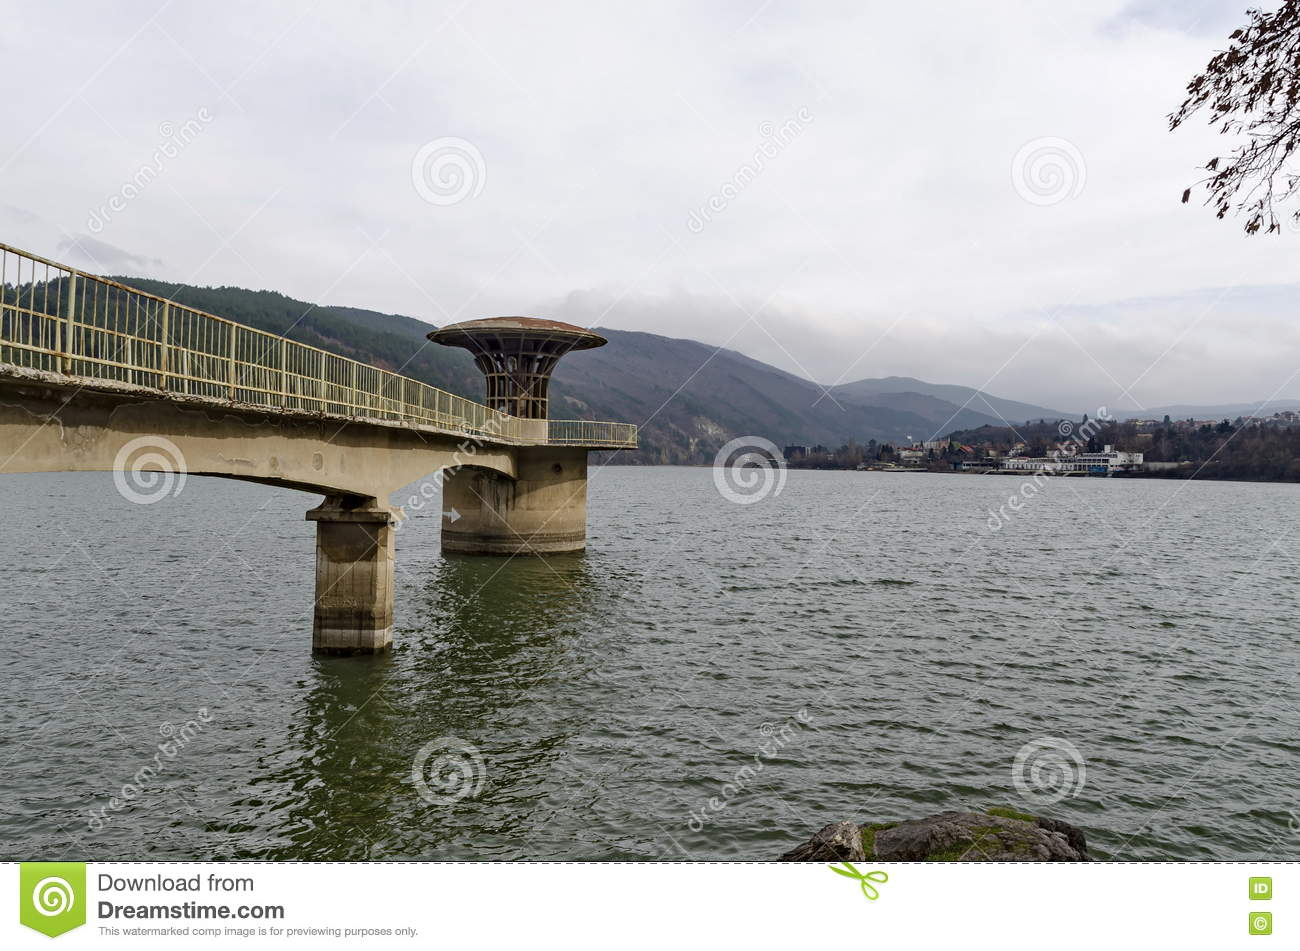 Concrete tower - equipment of picturesque dam, gather water of Iskar river